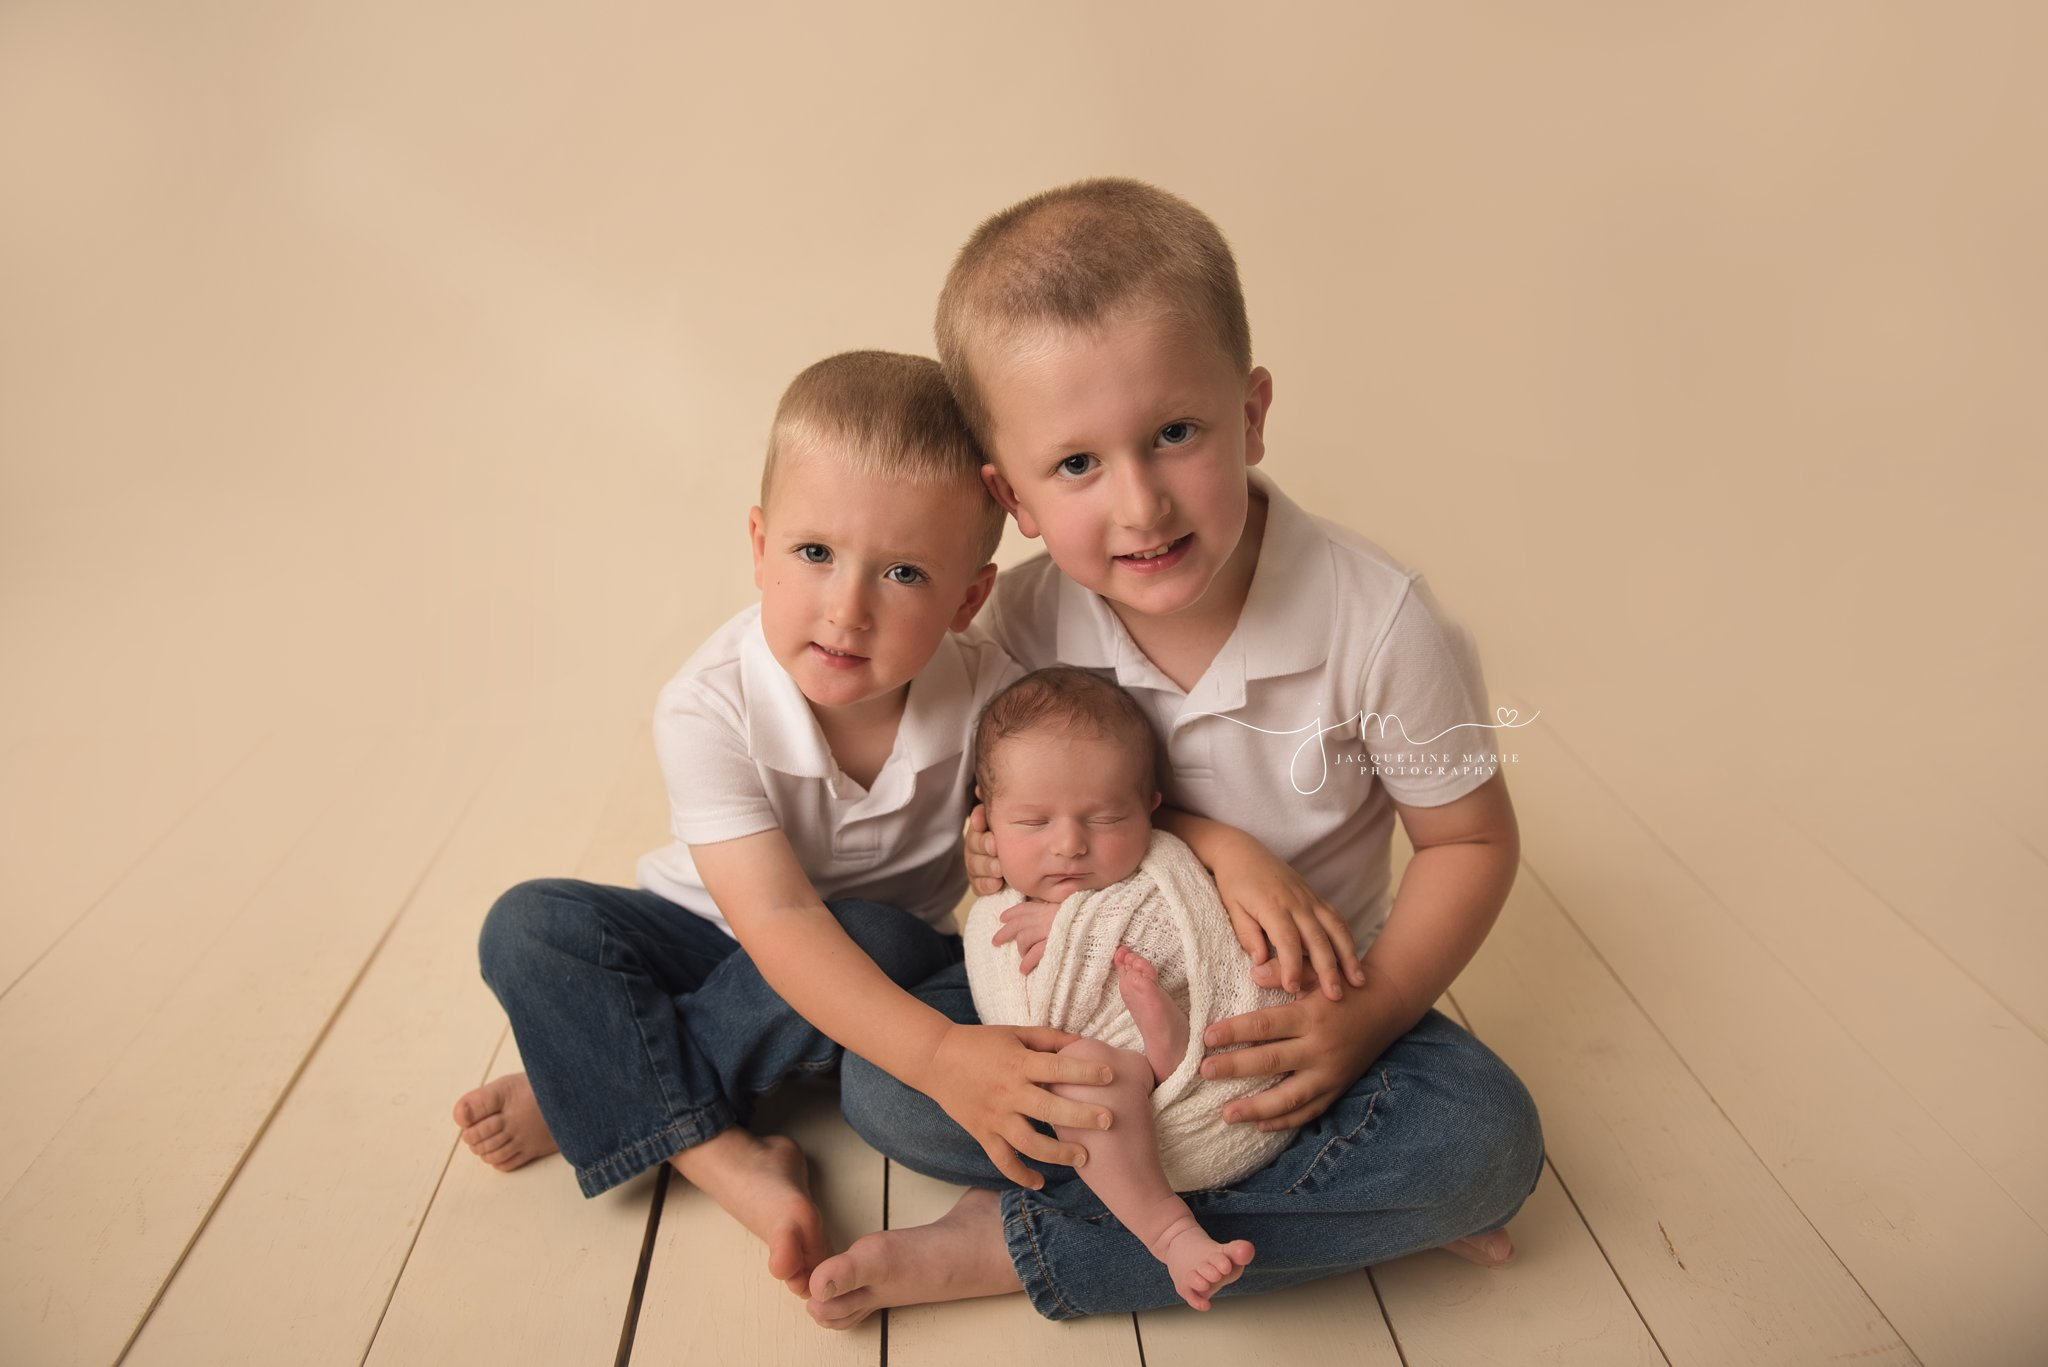 older siblings hold younger brother for newborn photography in colymbus ohio